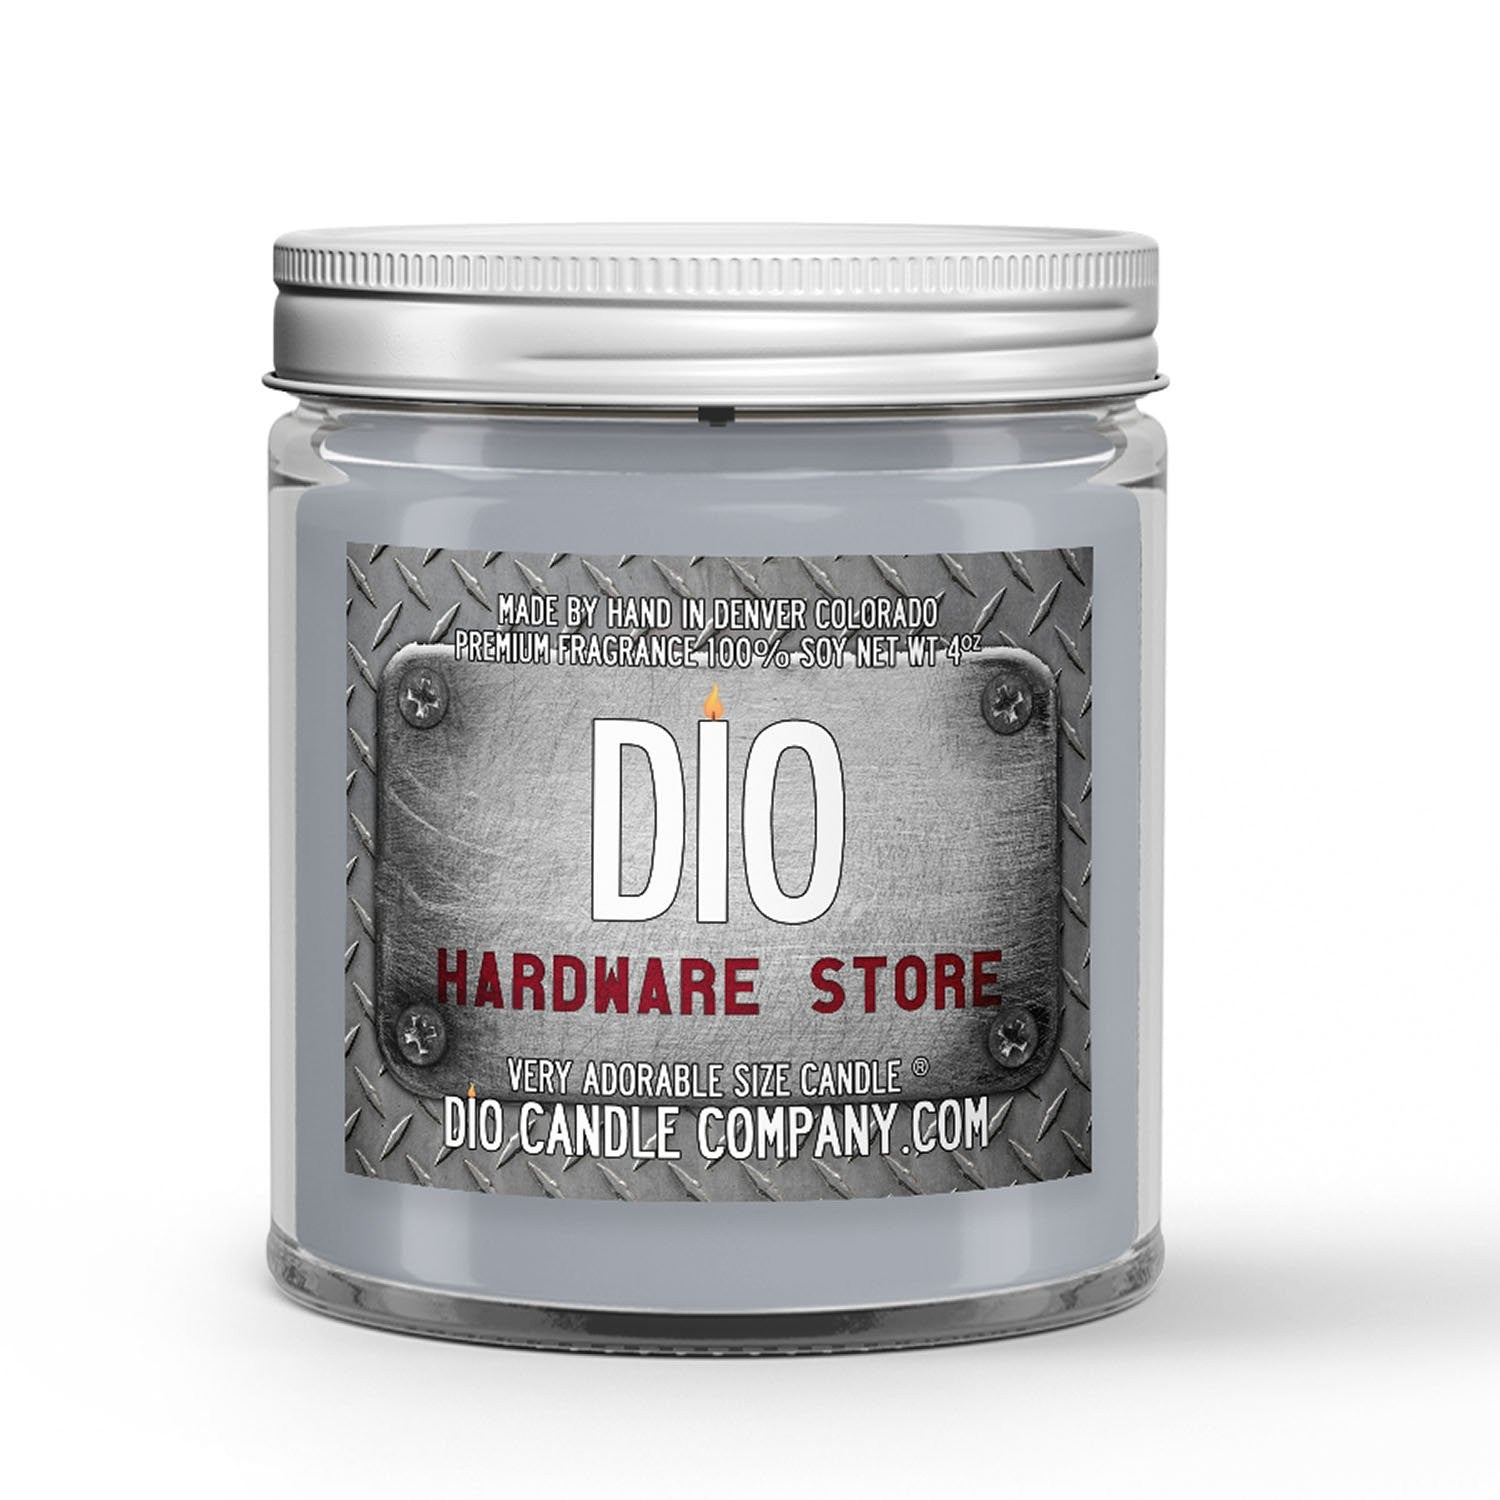 Hardware Store Candle Paint Mixers - Wooden Dowels - Dusty Shelves Scented - Dio Candle Company